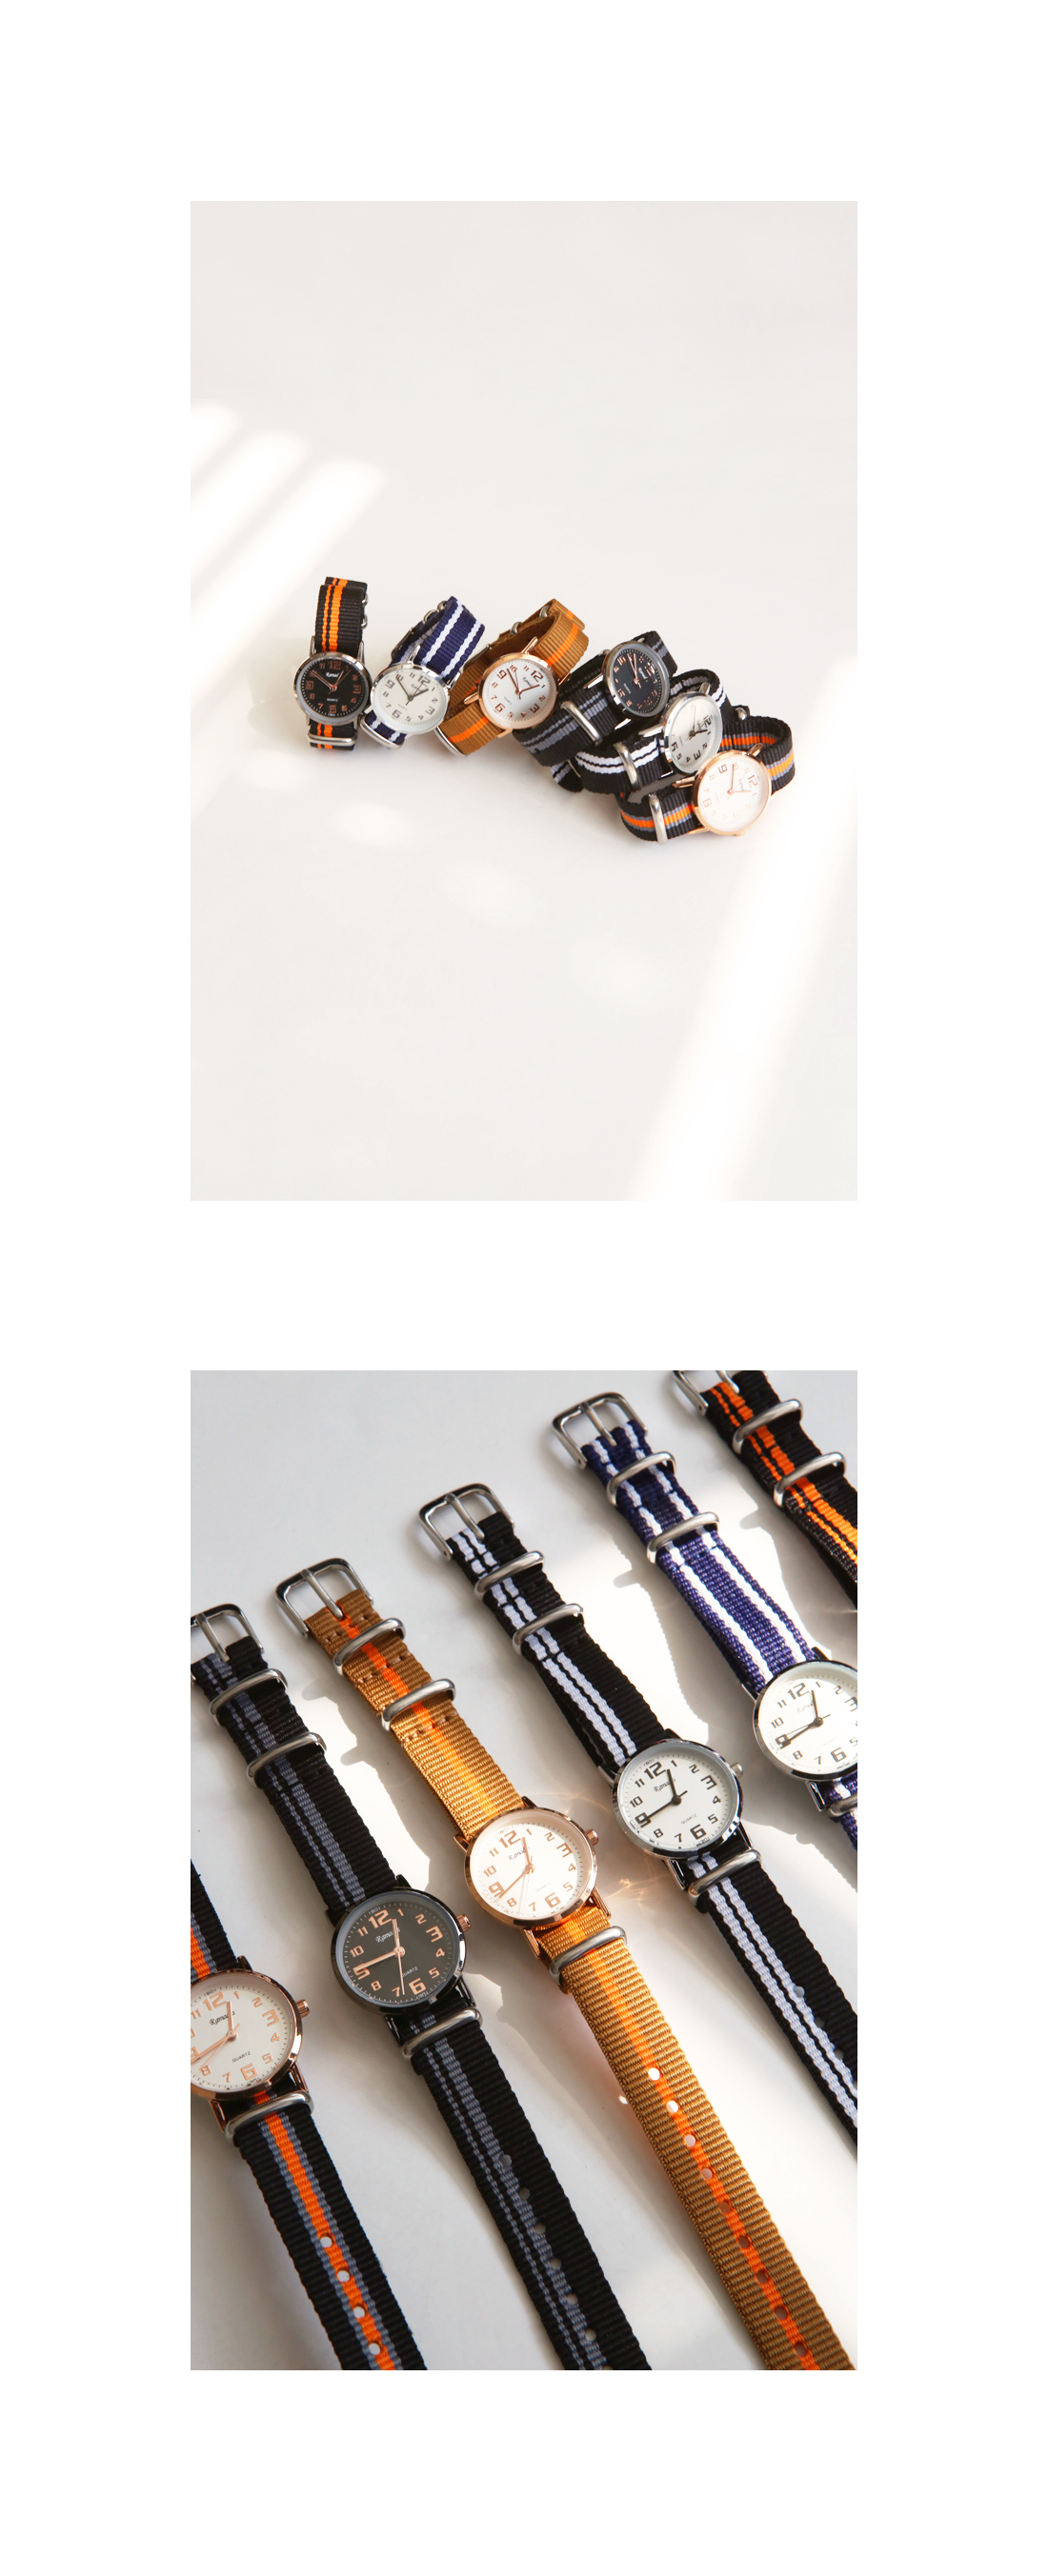 FABRIC BAND WATCH - 2 TYPE